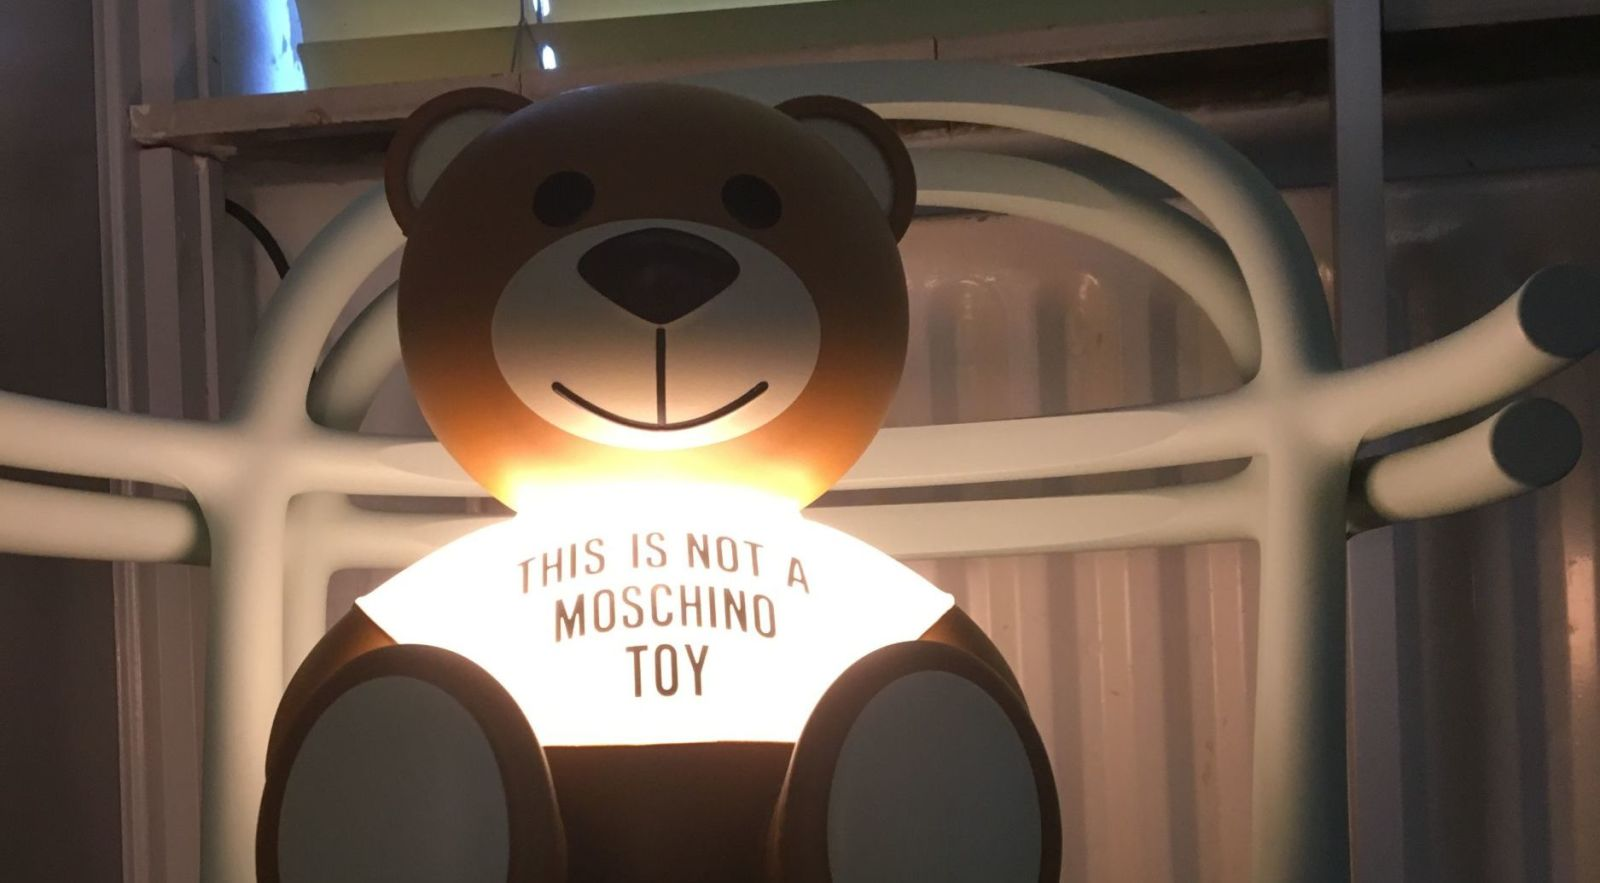 Not a Moschino Toy